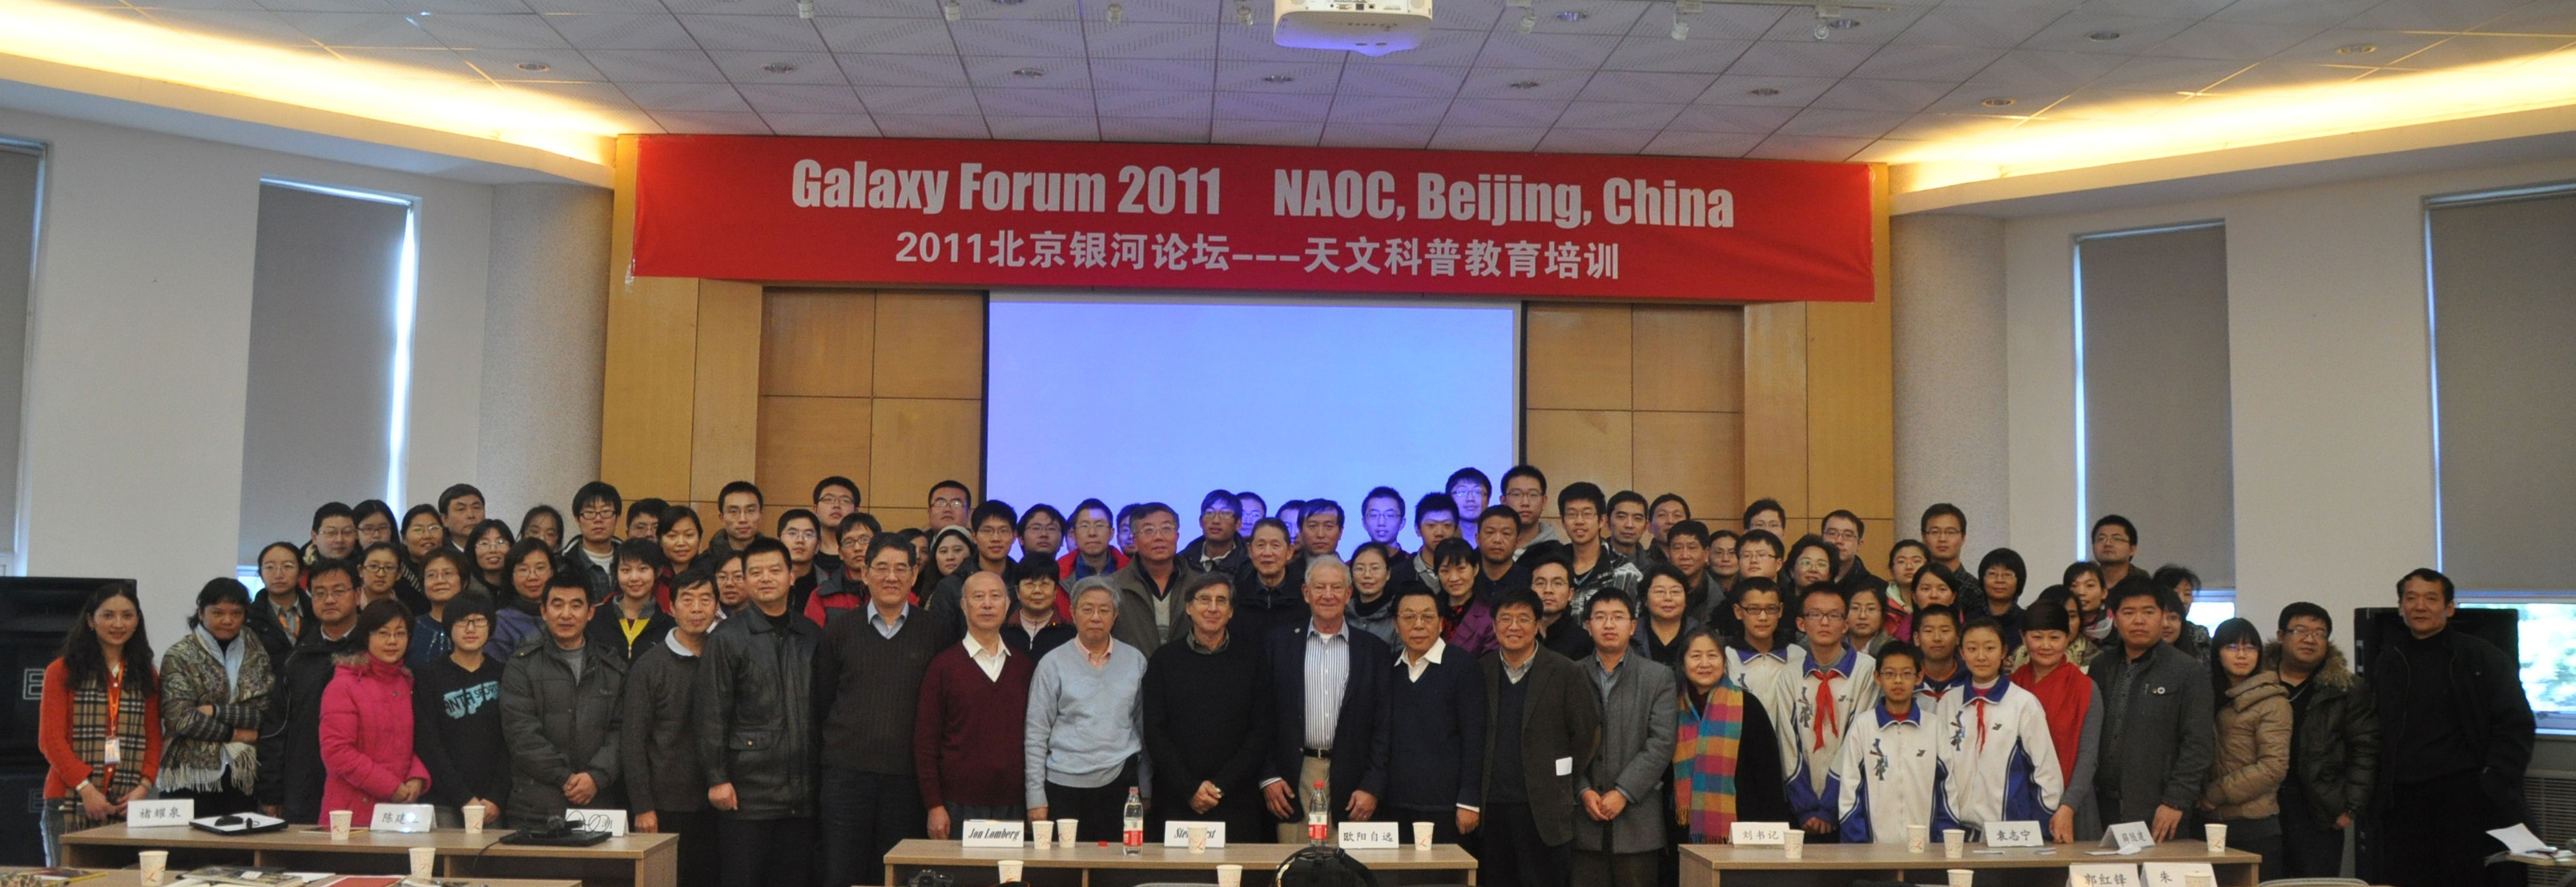 Galaxy Forum China 2011 NAOC Beijing